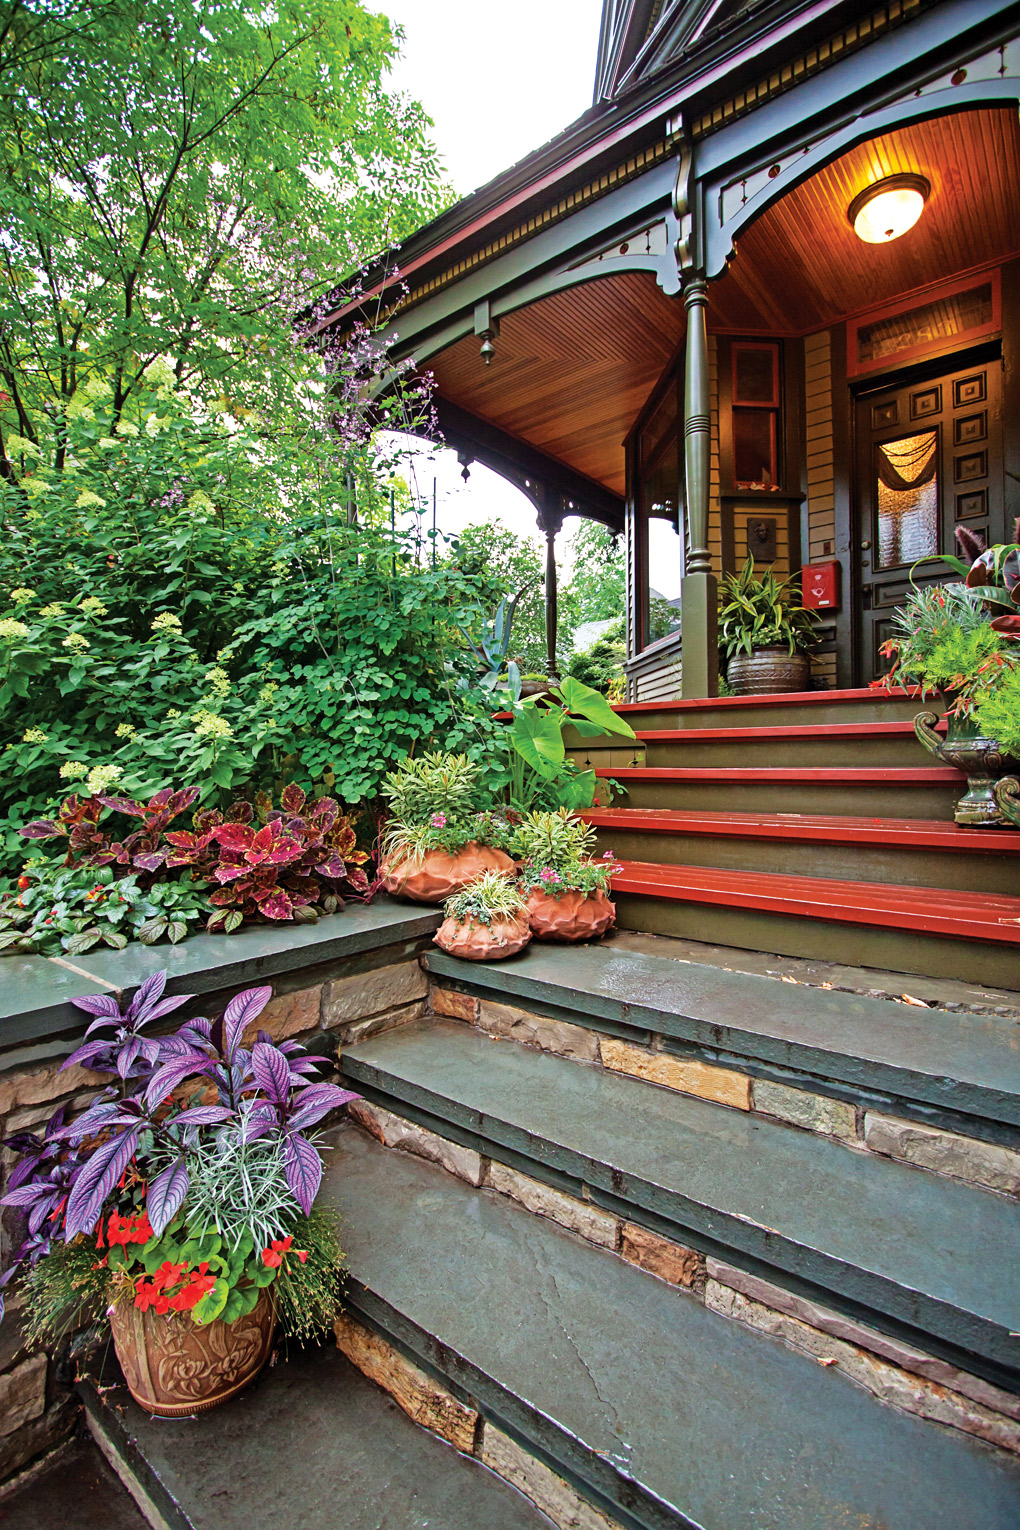 Scott-Endres_Porch-Stairs